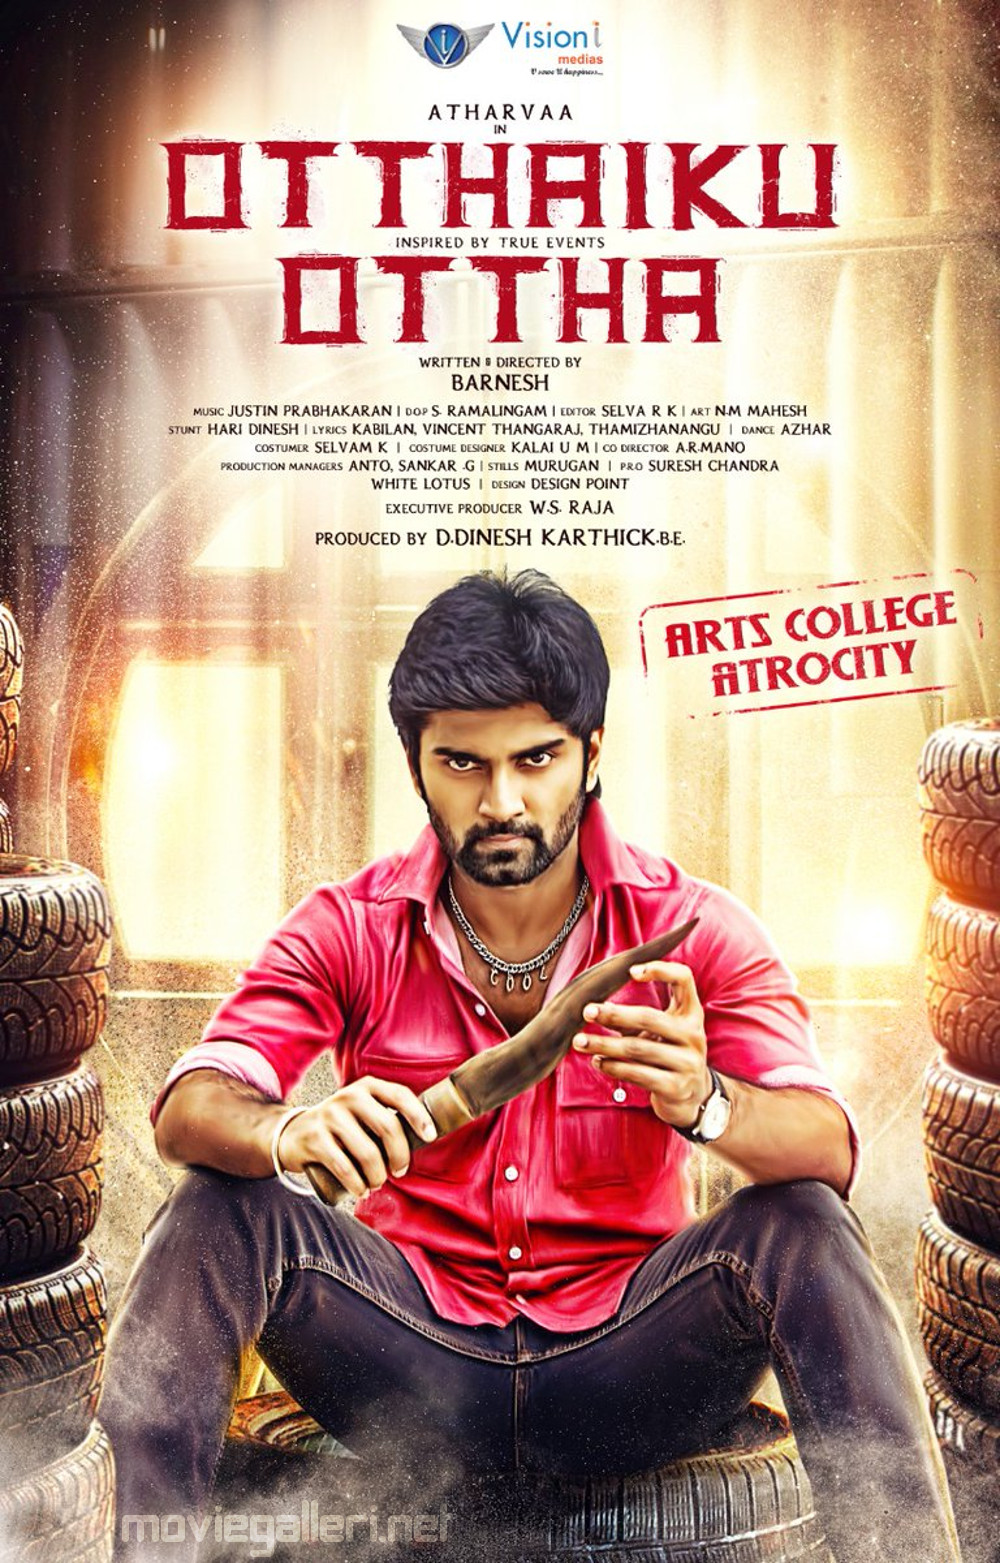 Atharvaa Otthaiku Ottha First Look Poster HD